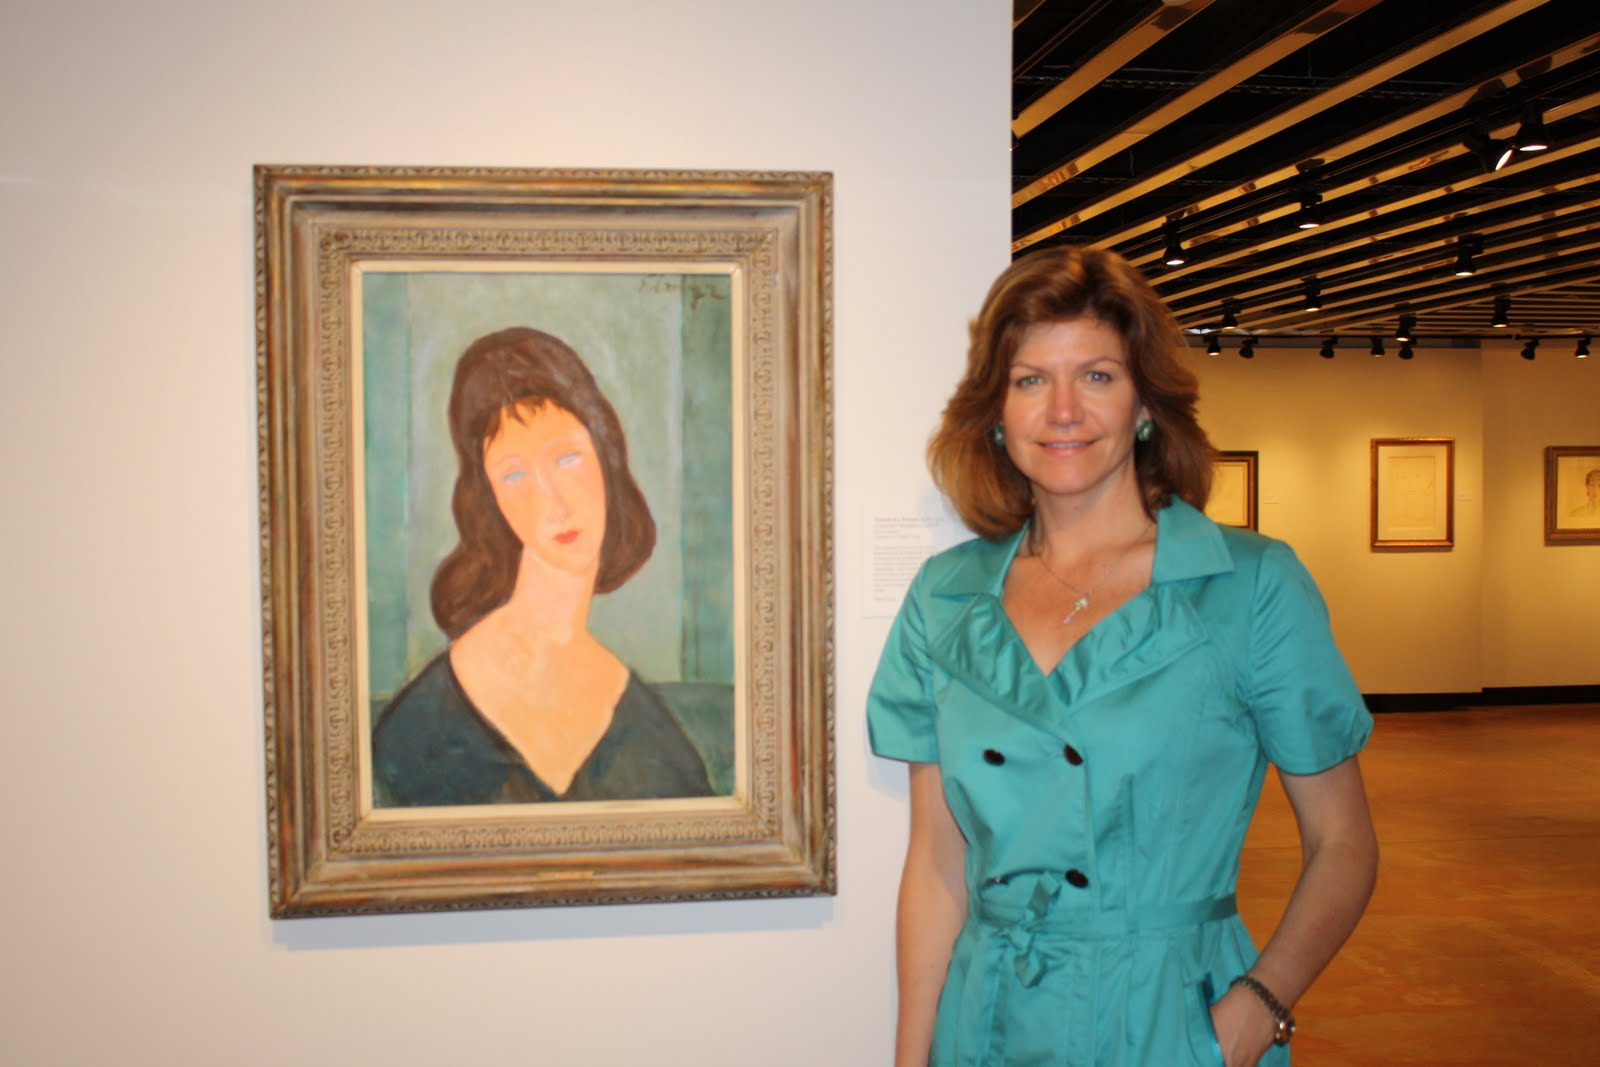 art fakes and forgeries Posts about fakes and forgeries written by centerforartlaw and irina tarsis, esq.